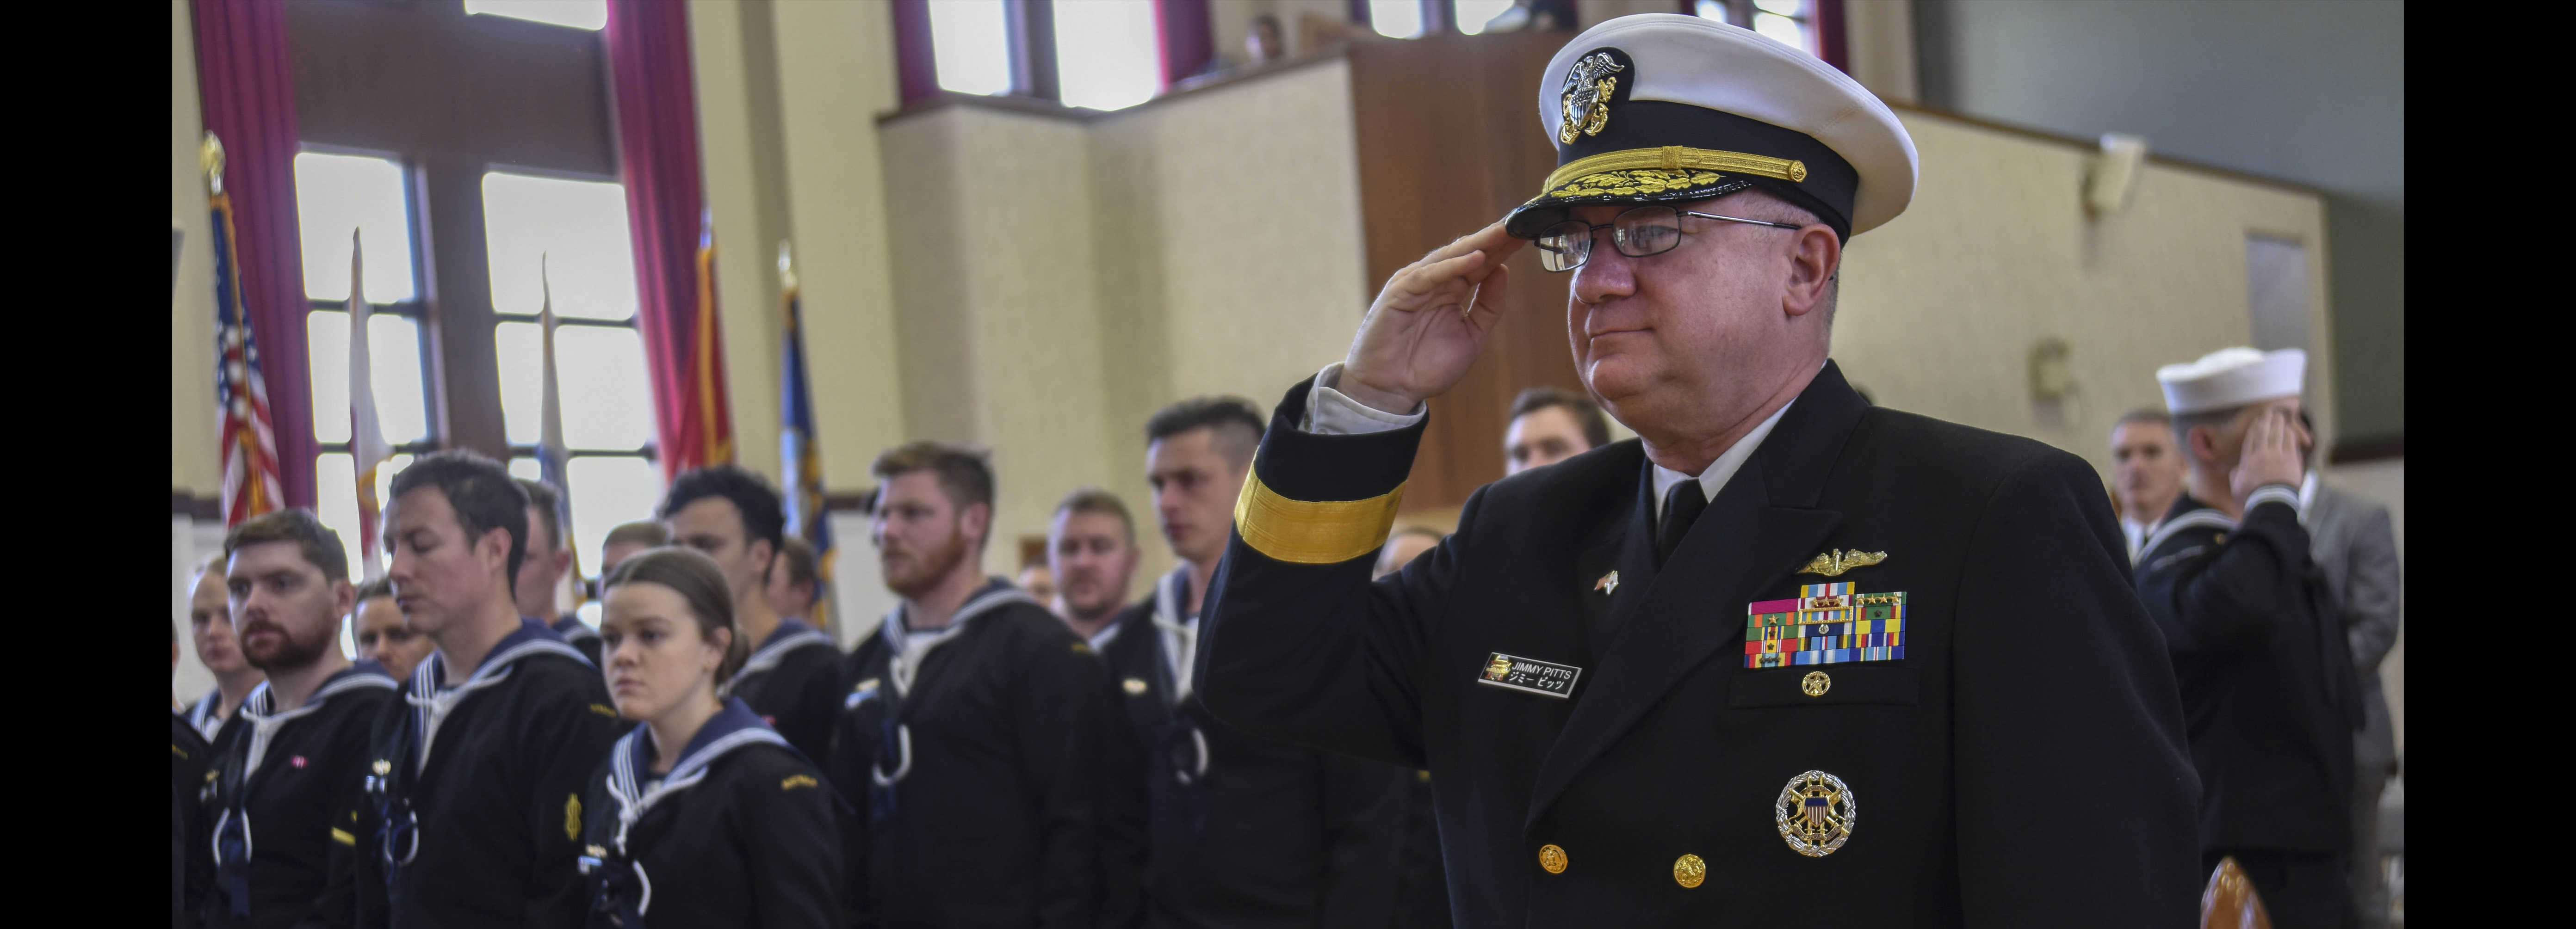 Rear Adm. Jimmy Pitts, Commander, Submarine Group 7, salutes during the national anthem prior to giving the keynote address at the Fleet Activities Yokosuka